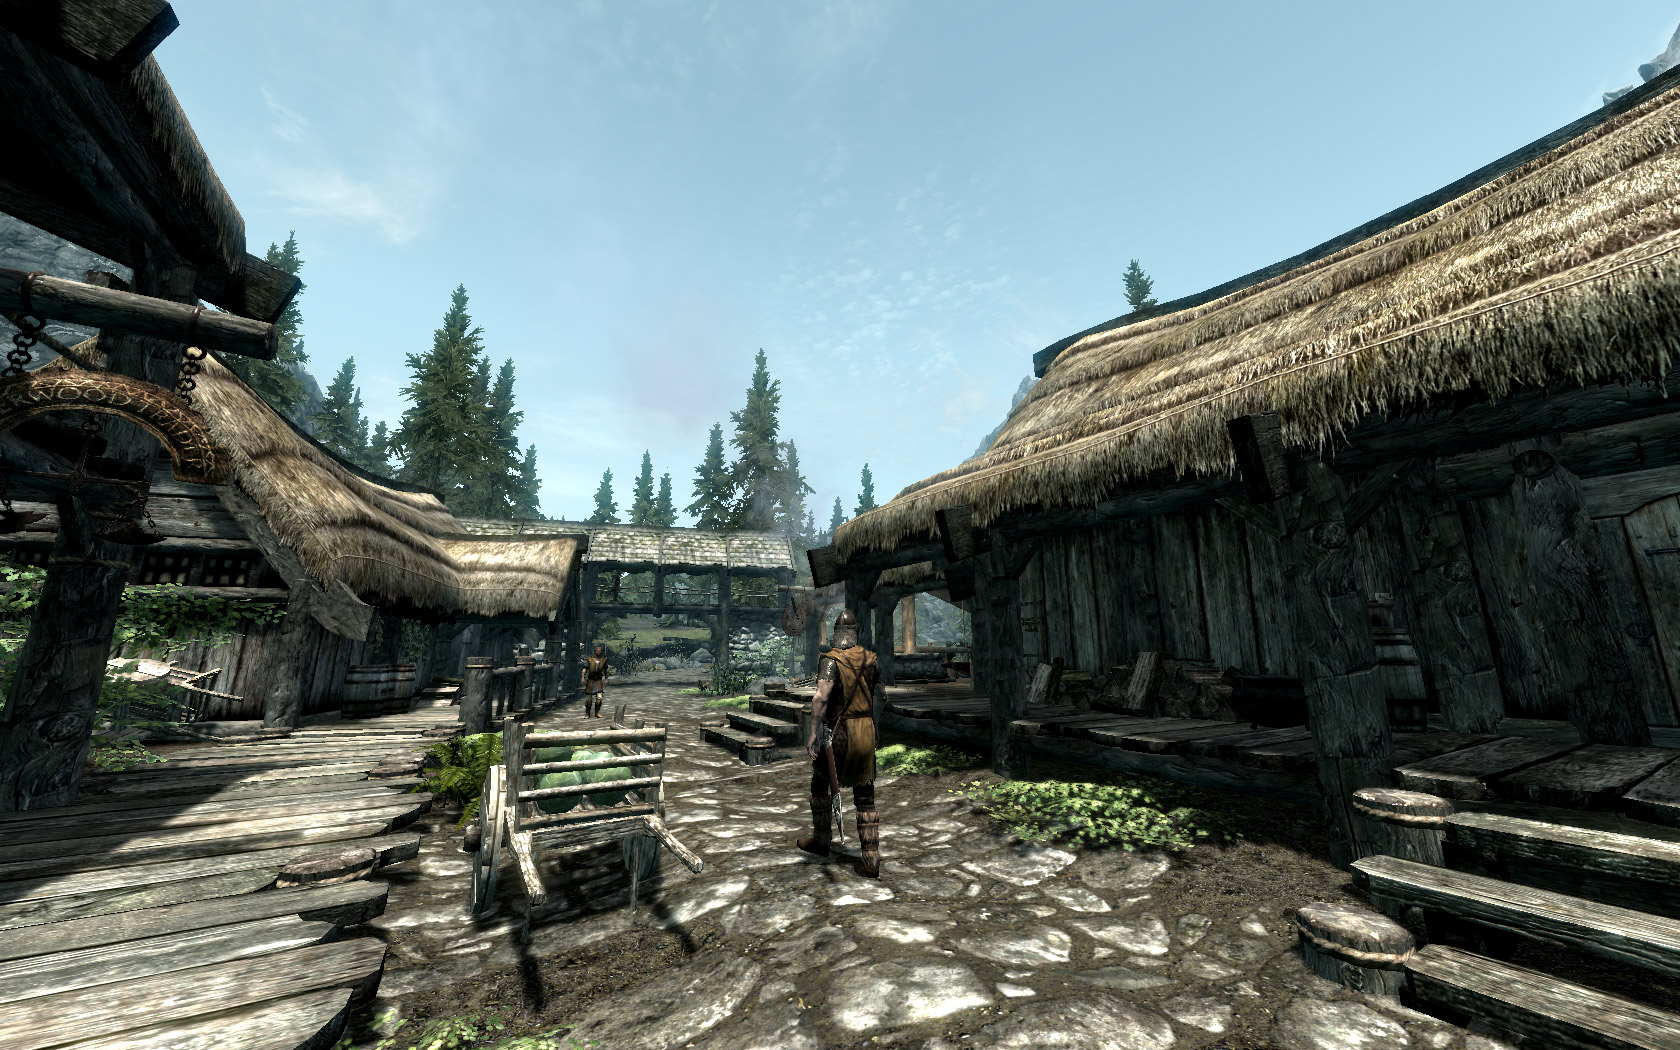 Skyrim screenshot gallery